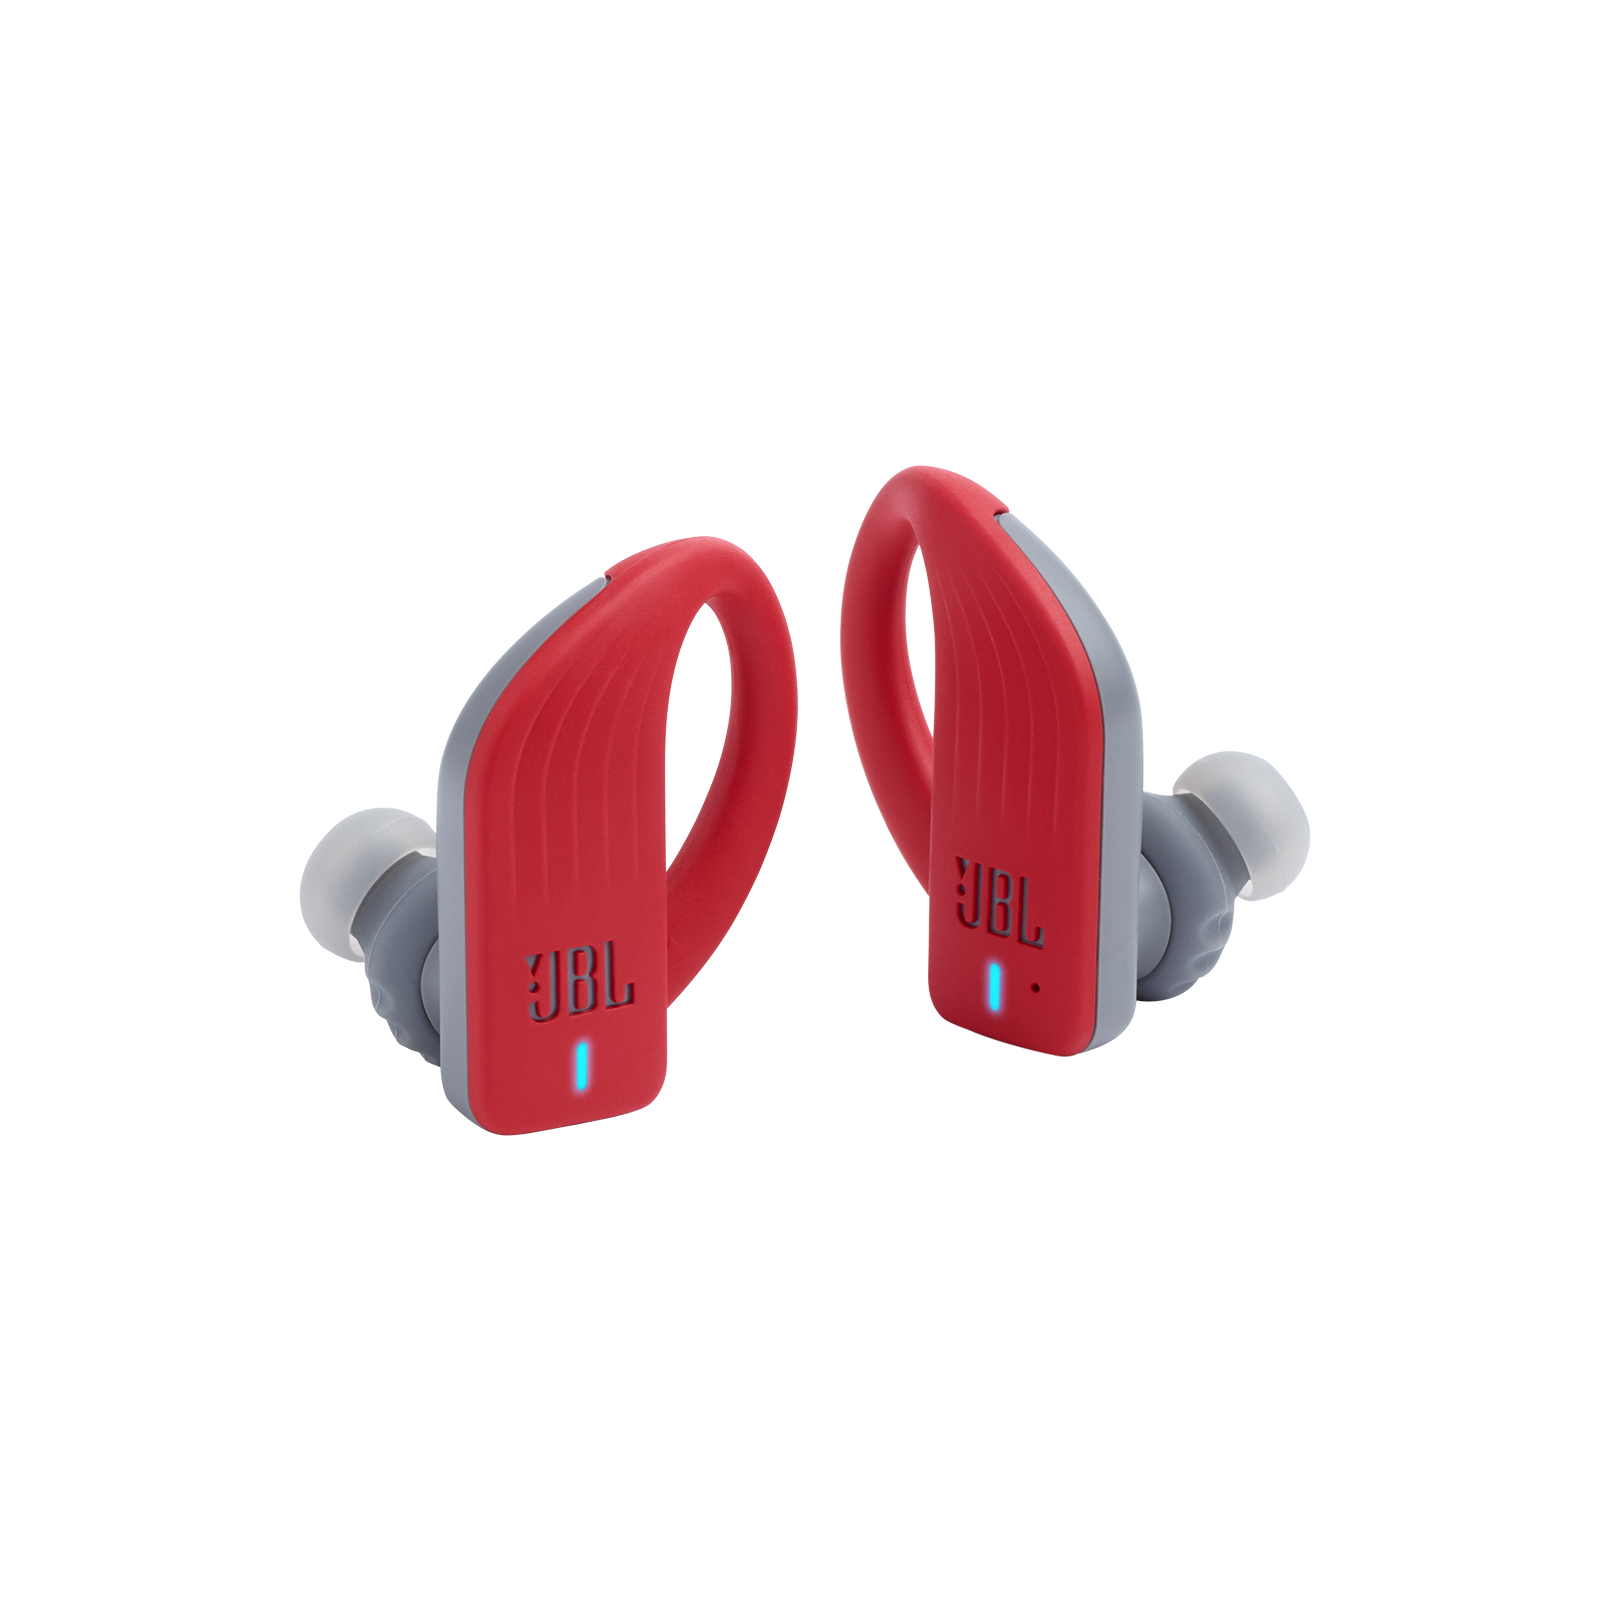 JBL Endurance PEAK - Red - Waterproof True Wireless In-Ear Sport Headphones - Hero